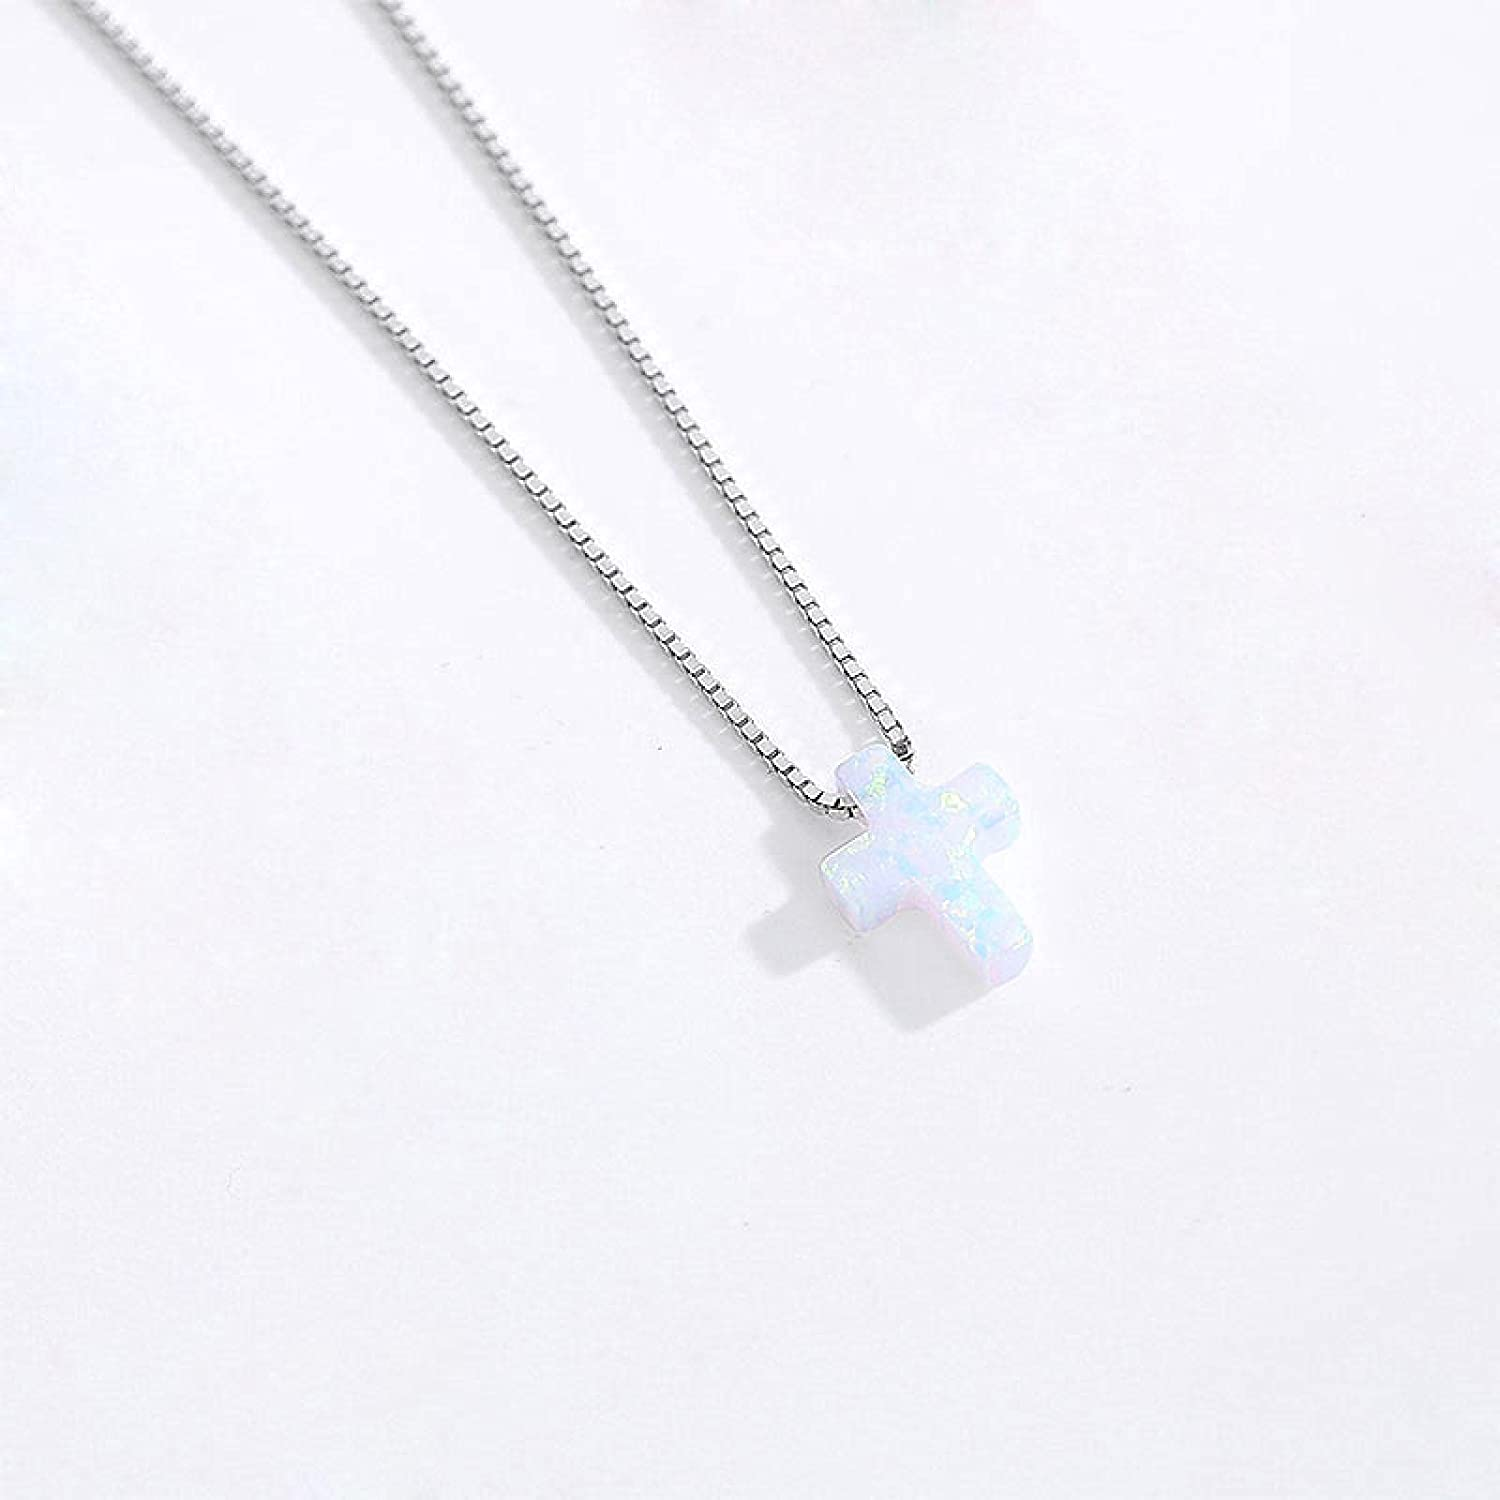 Opal Necklace Silver Translated 925 Some reservation Sterling Chai Cross Blue Woman